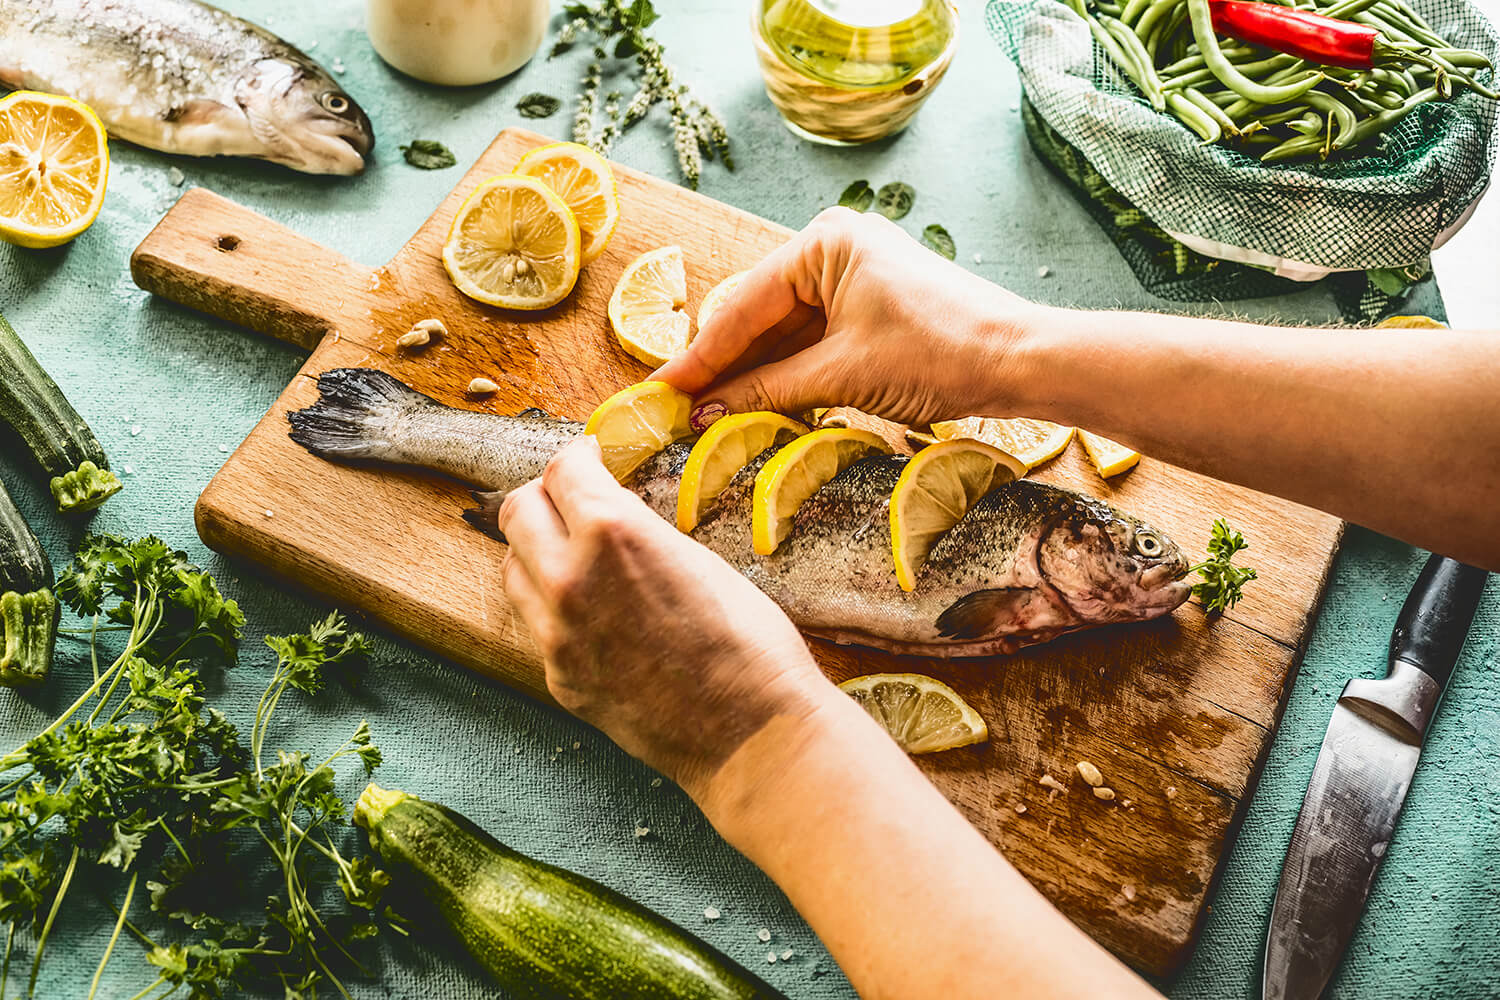 A whole fish laid down on a rustic wooden cutting board garnished with sliced lemons.